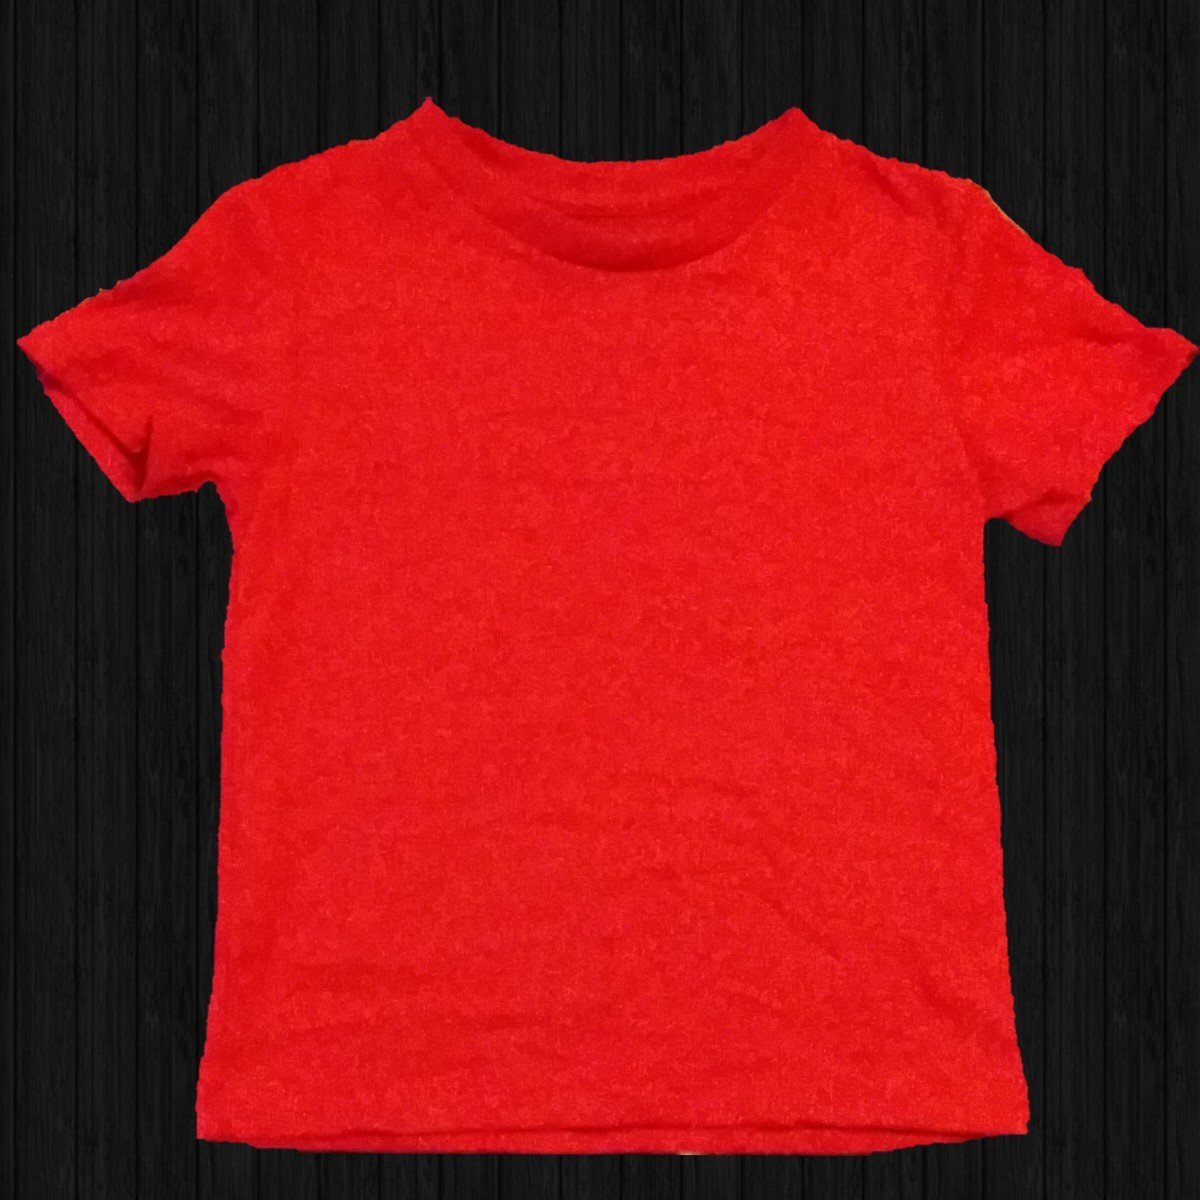 Red Basic Tee - LilChic BabyBug Boutique